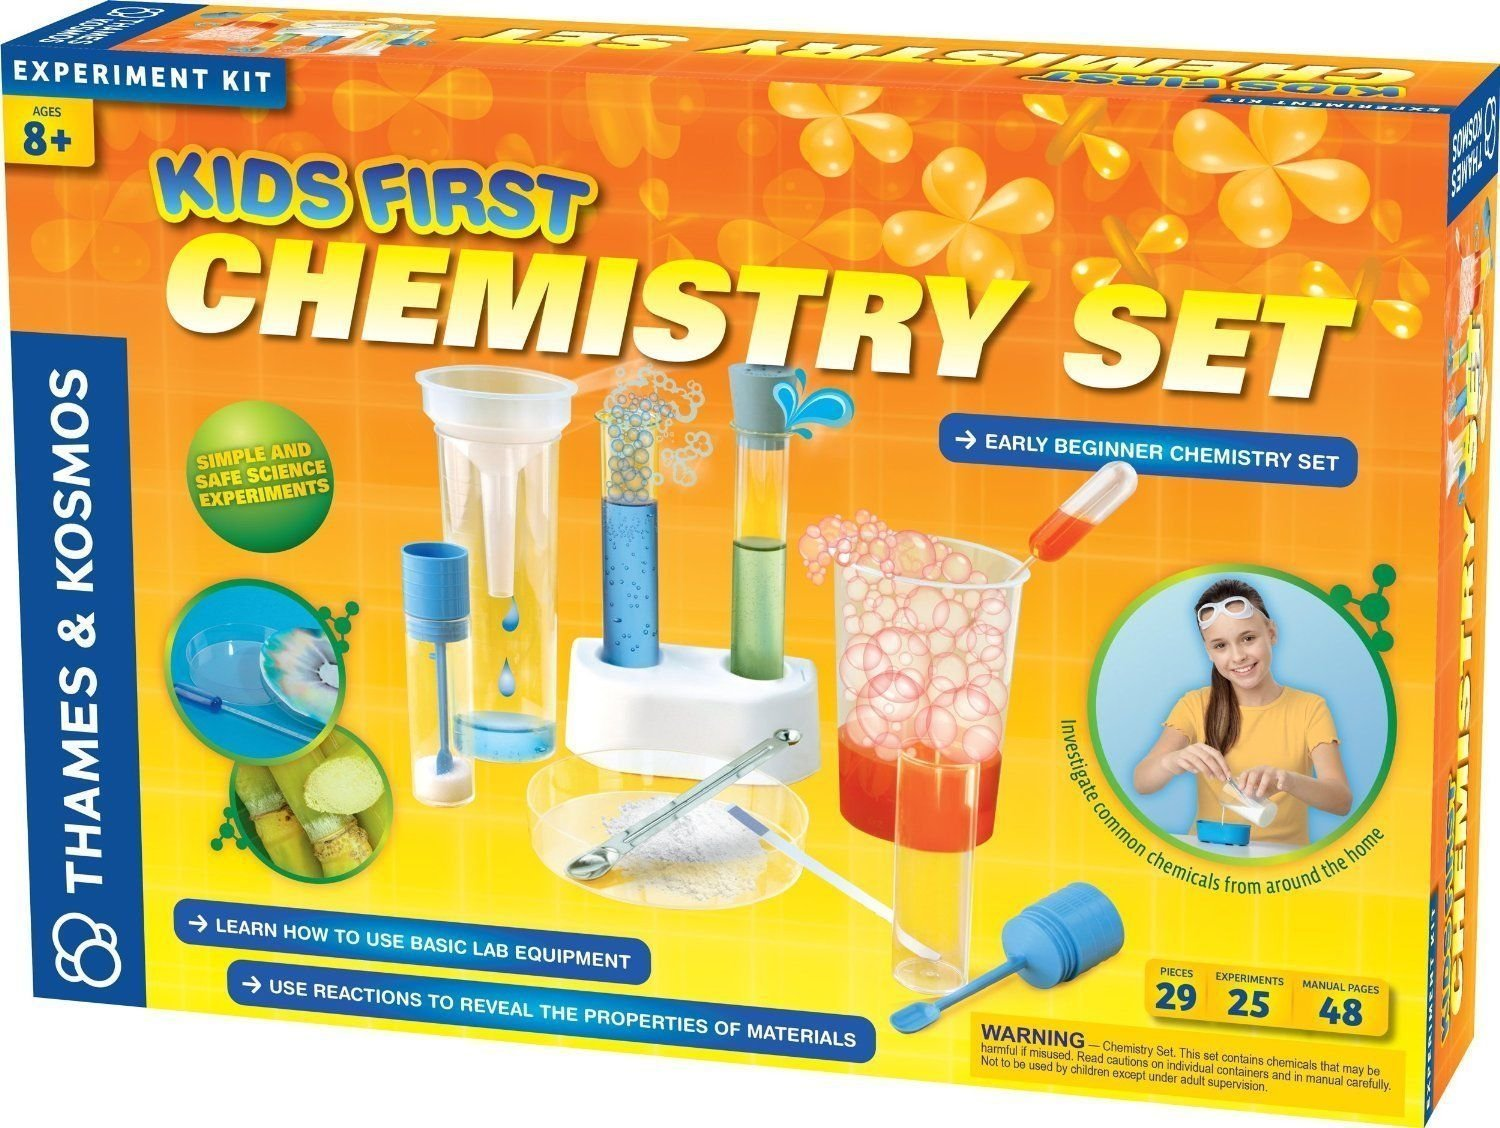 """Thames and Kosmos Kids First Chemistry Set Science Kit Conduct Experiments To Identify Different Chemicals - 16.8L"""" x 3.2W"""" x 11.5H"""" - Ages 8+ years"""